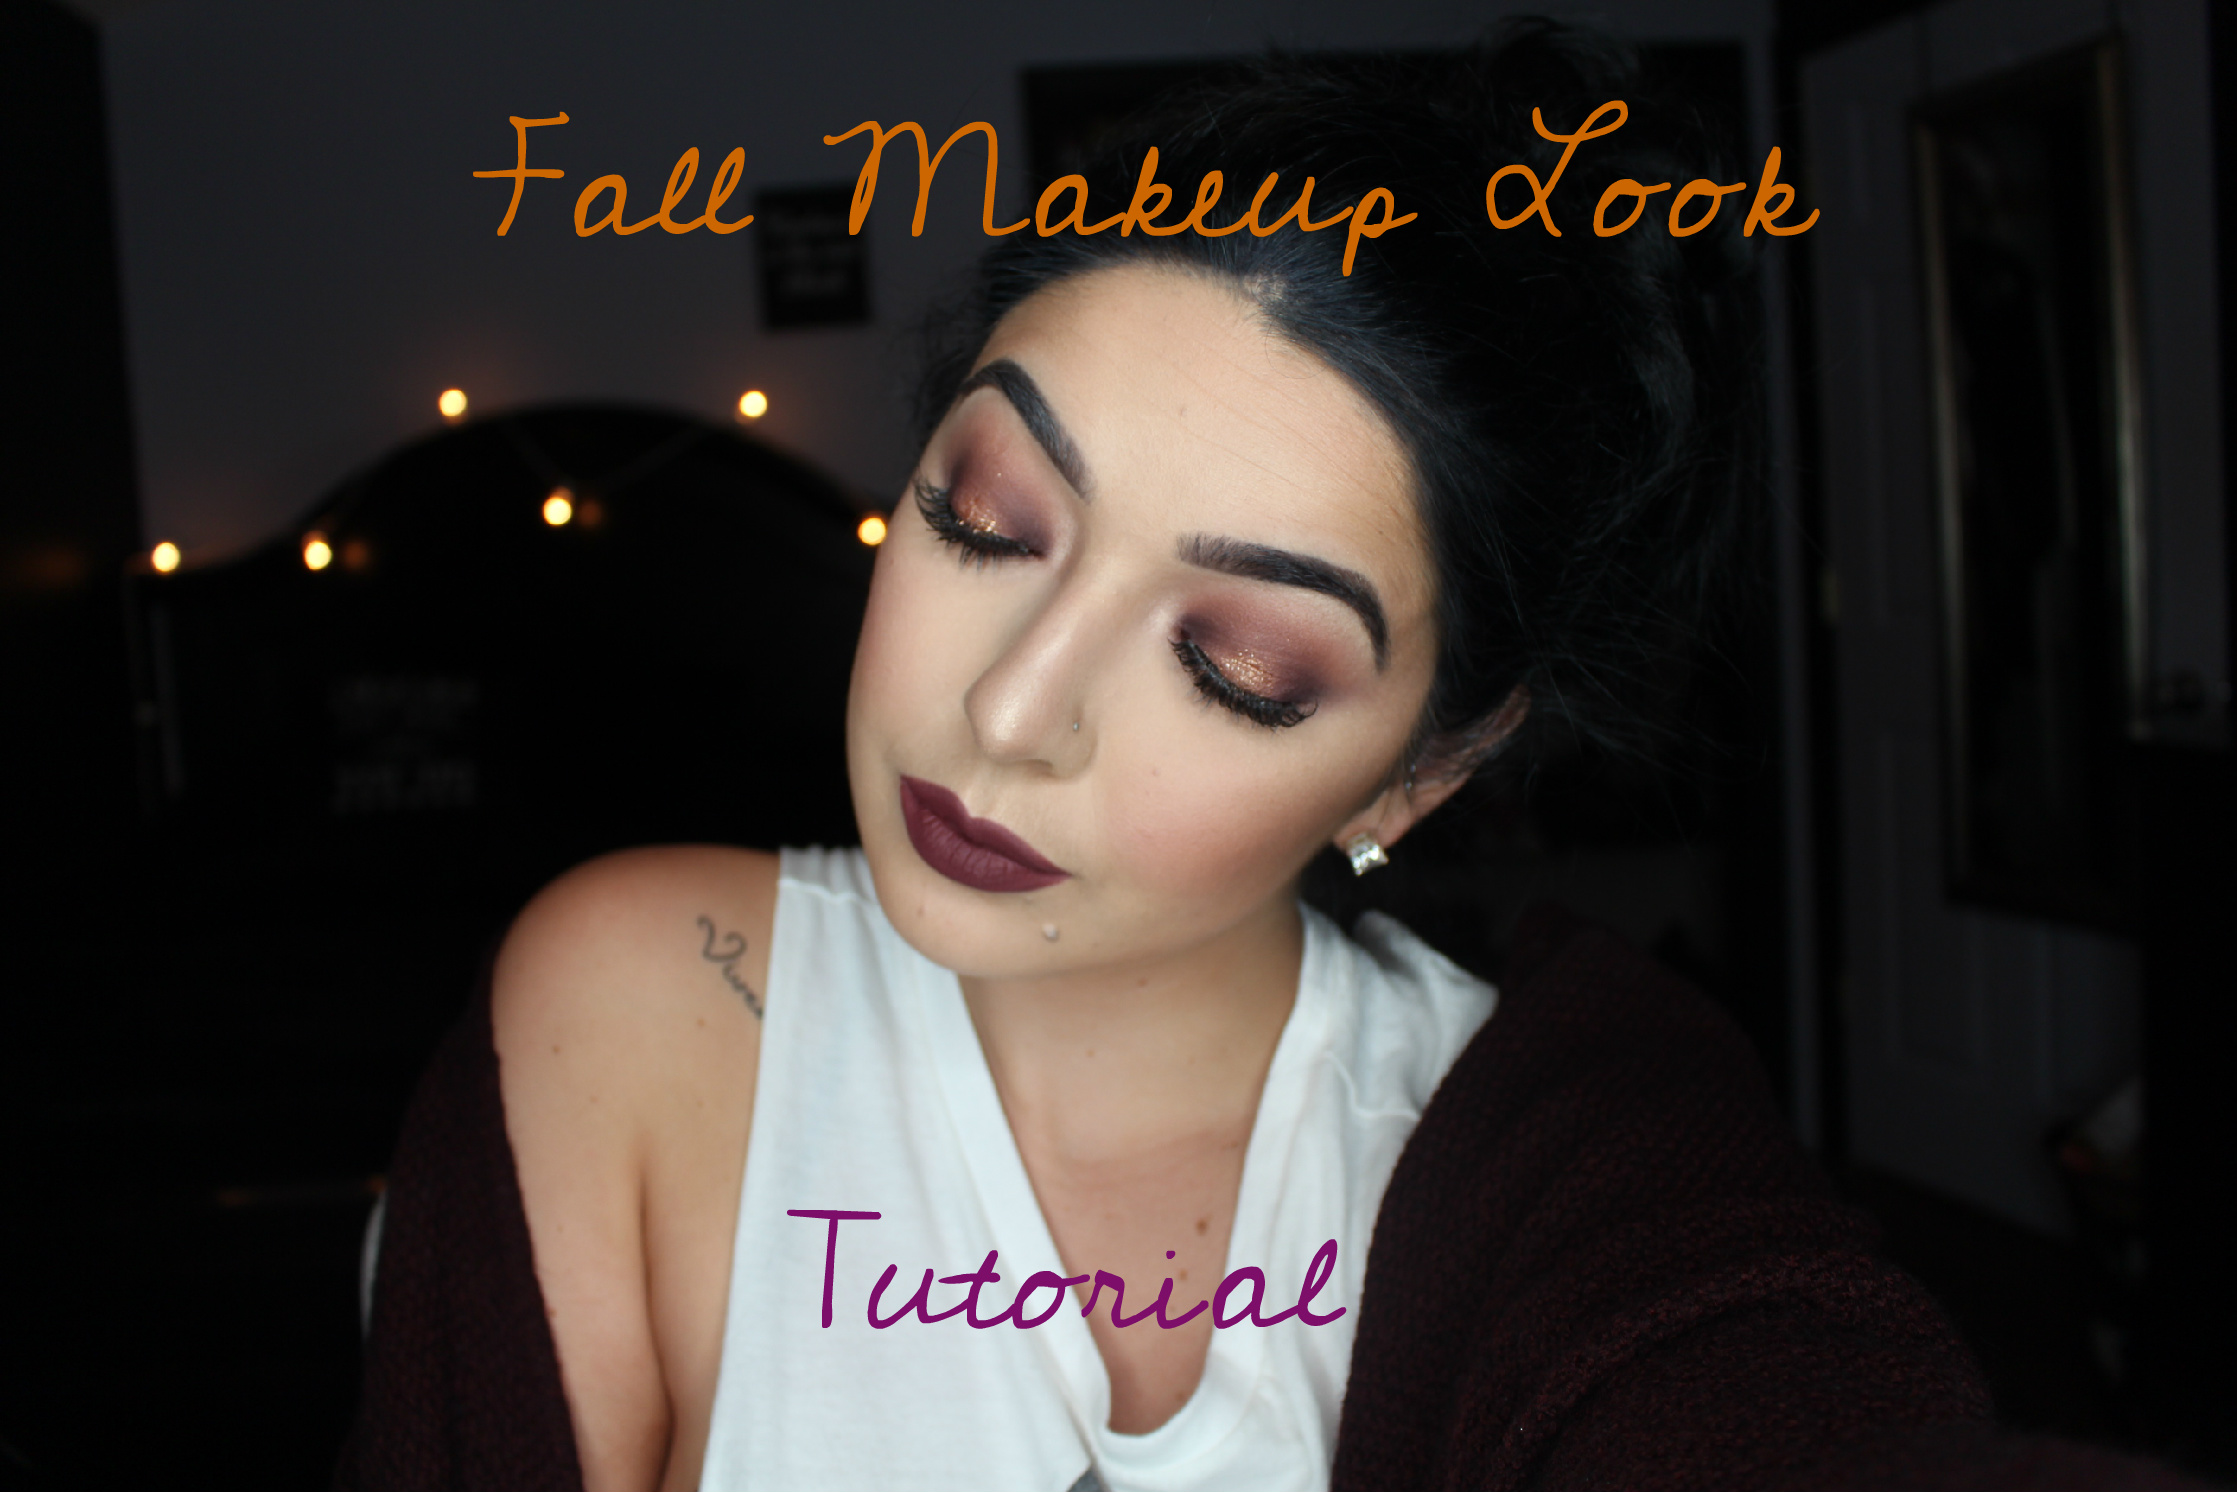 Fall makeup look tutorial